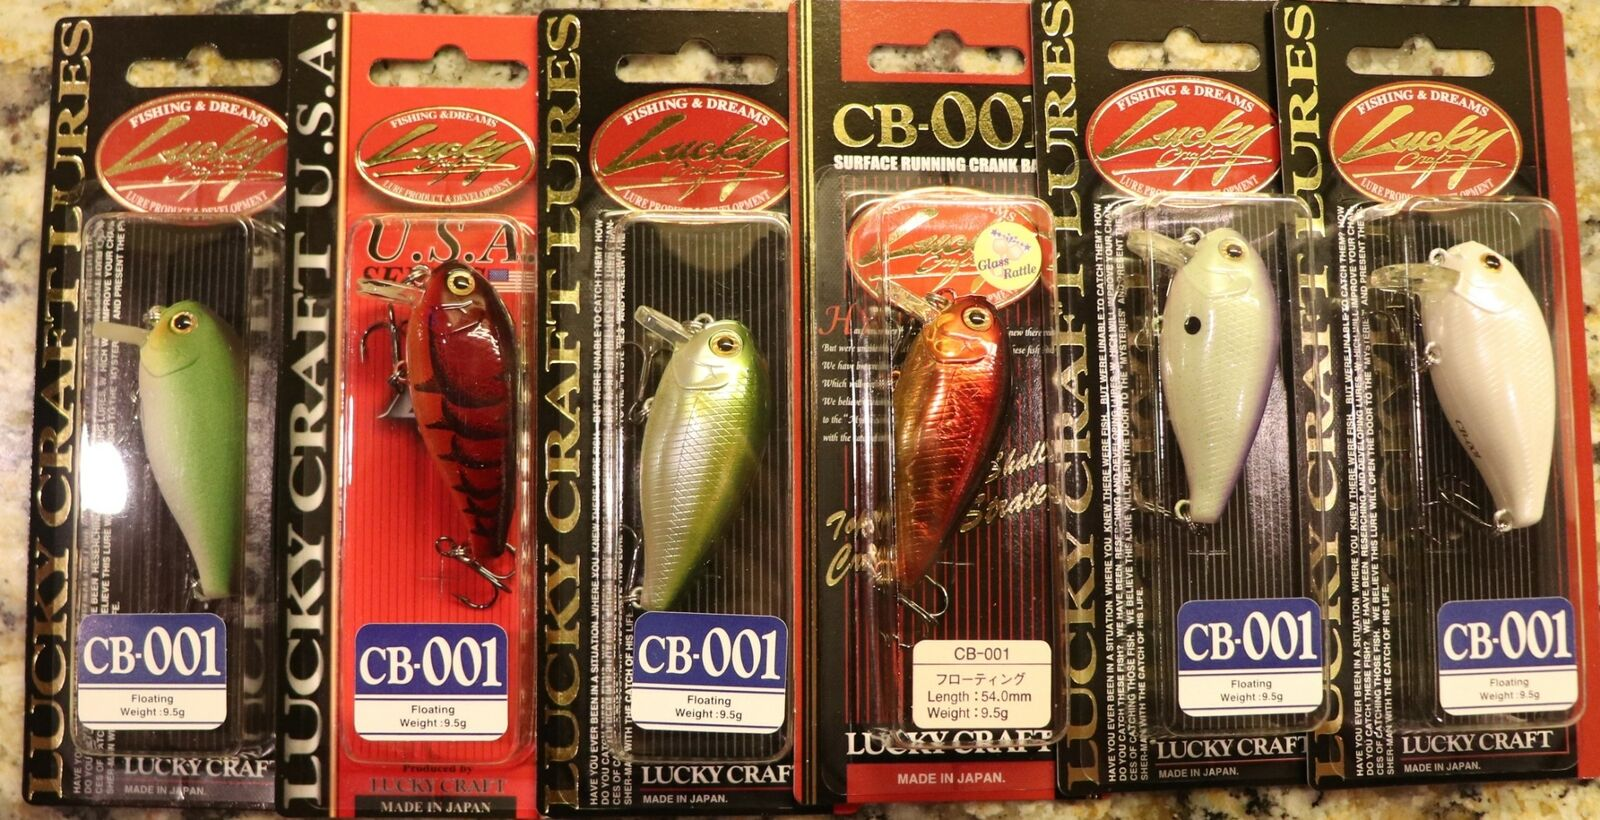 2 LUCKY CRAFT CB-001 CRANKBAITS FLOATING COLOR IS PEARL AYU NIP